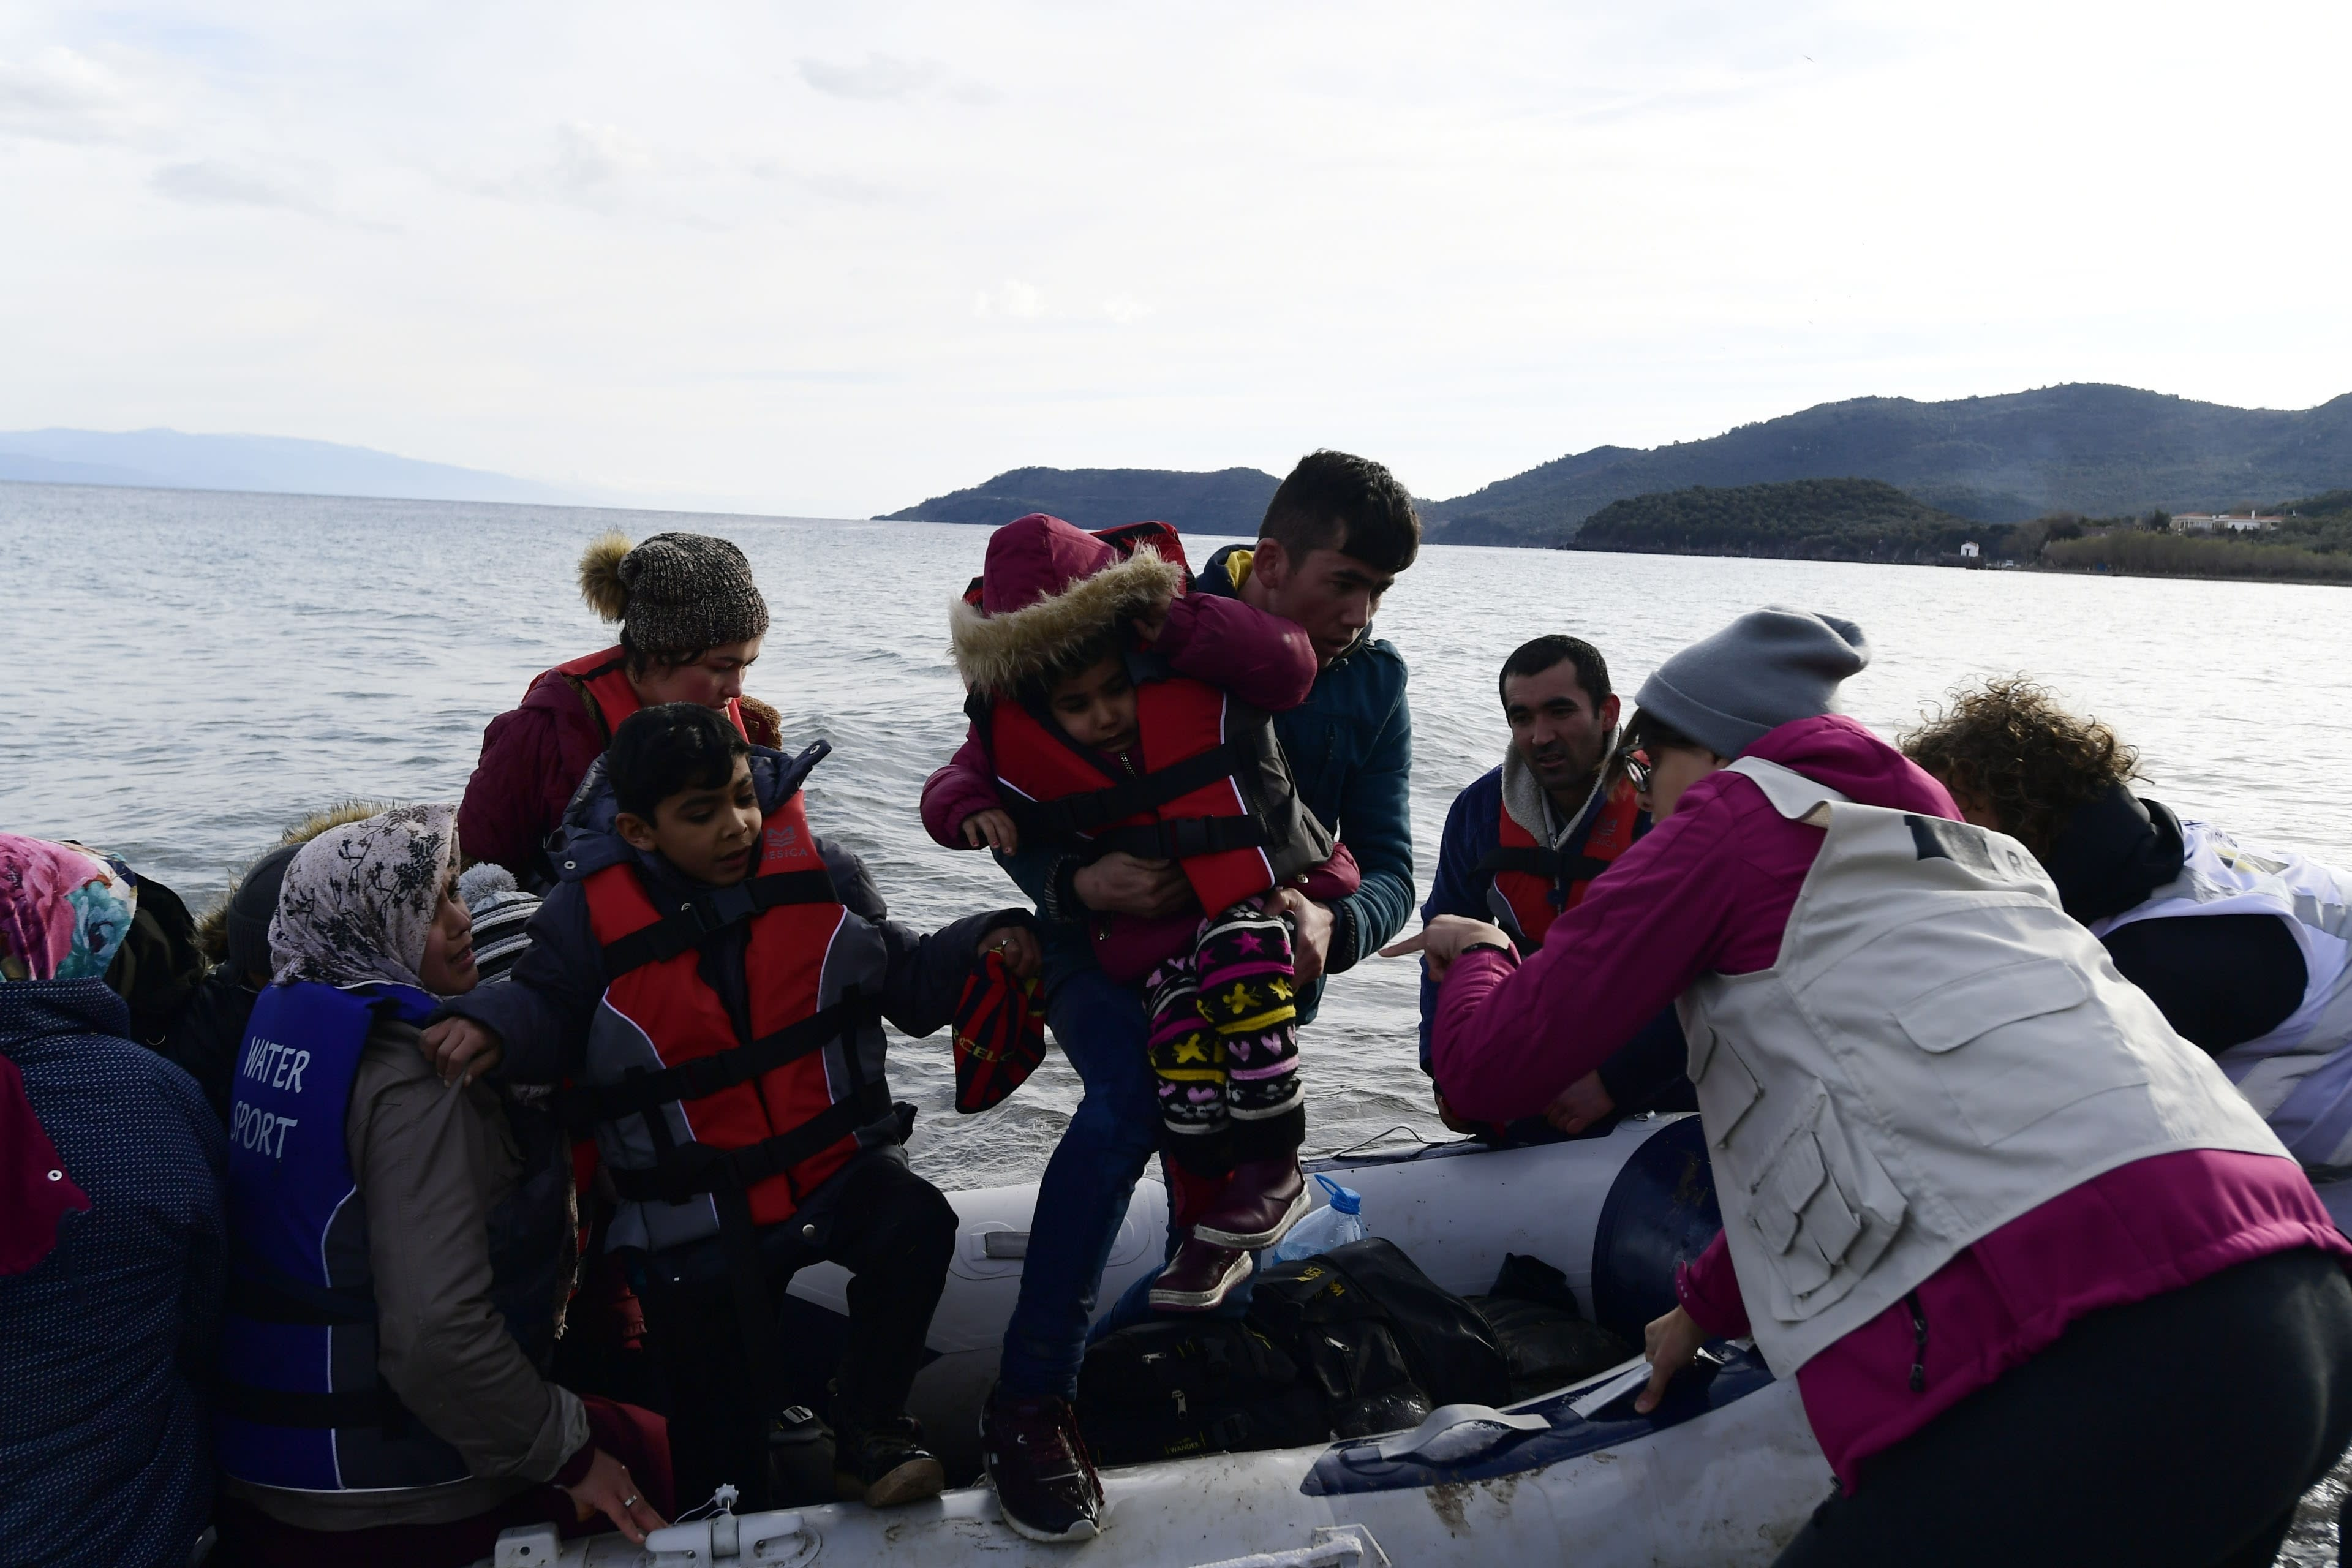 Refugees and migrants arrive with a dinghy at the village of Skala Sikaminias, on the Greek island of Lesbos, after crossing the Aegean sea from Turkey, on Friday, Feb. 28, 2020. An air strike by Syrian government forces killed scores of Turkish soldiers in northeast Syria, a Turkish official said Friday, marking the largest death toll for Turkey in a single day since it first intervened in Syria in 2016. (AP Photo/Micheal Varaklas)